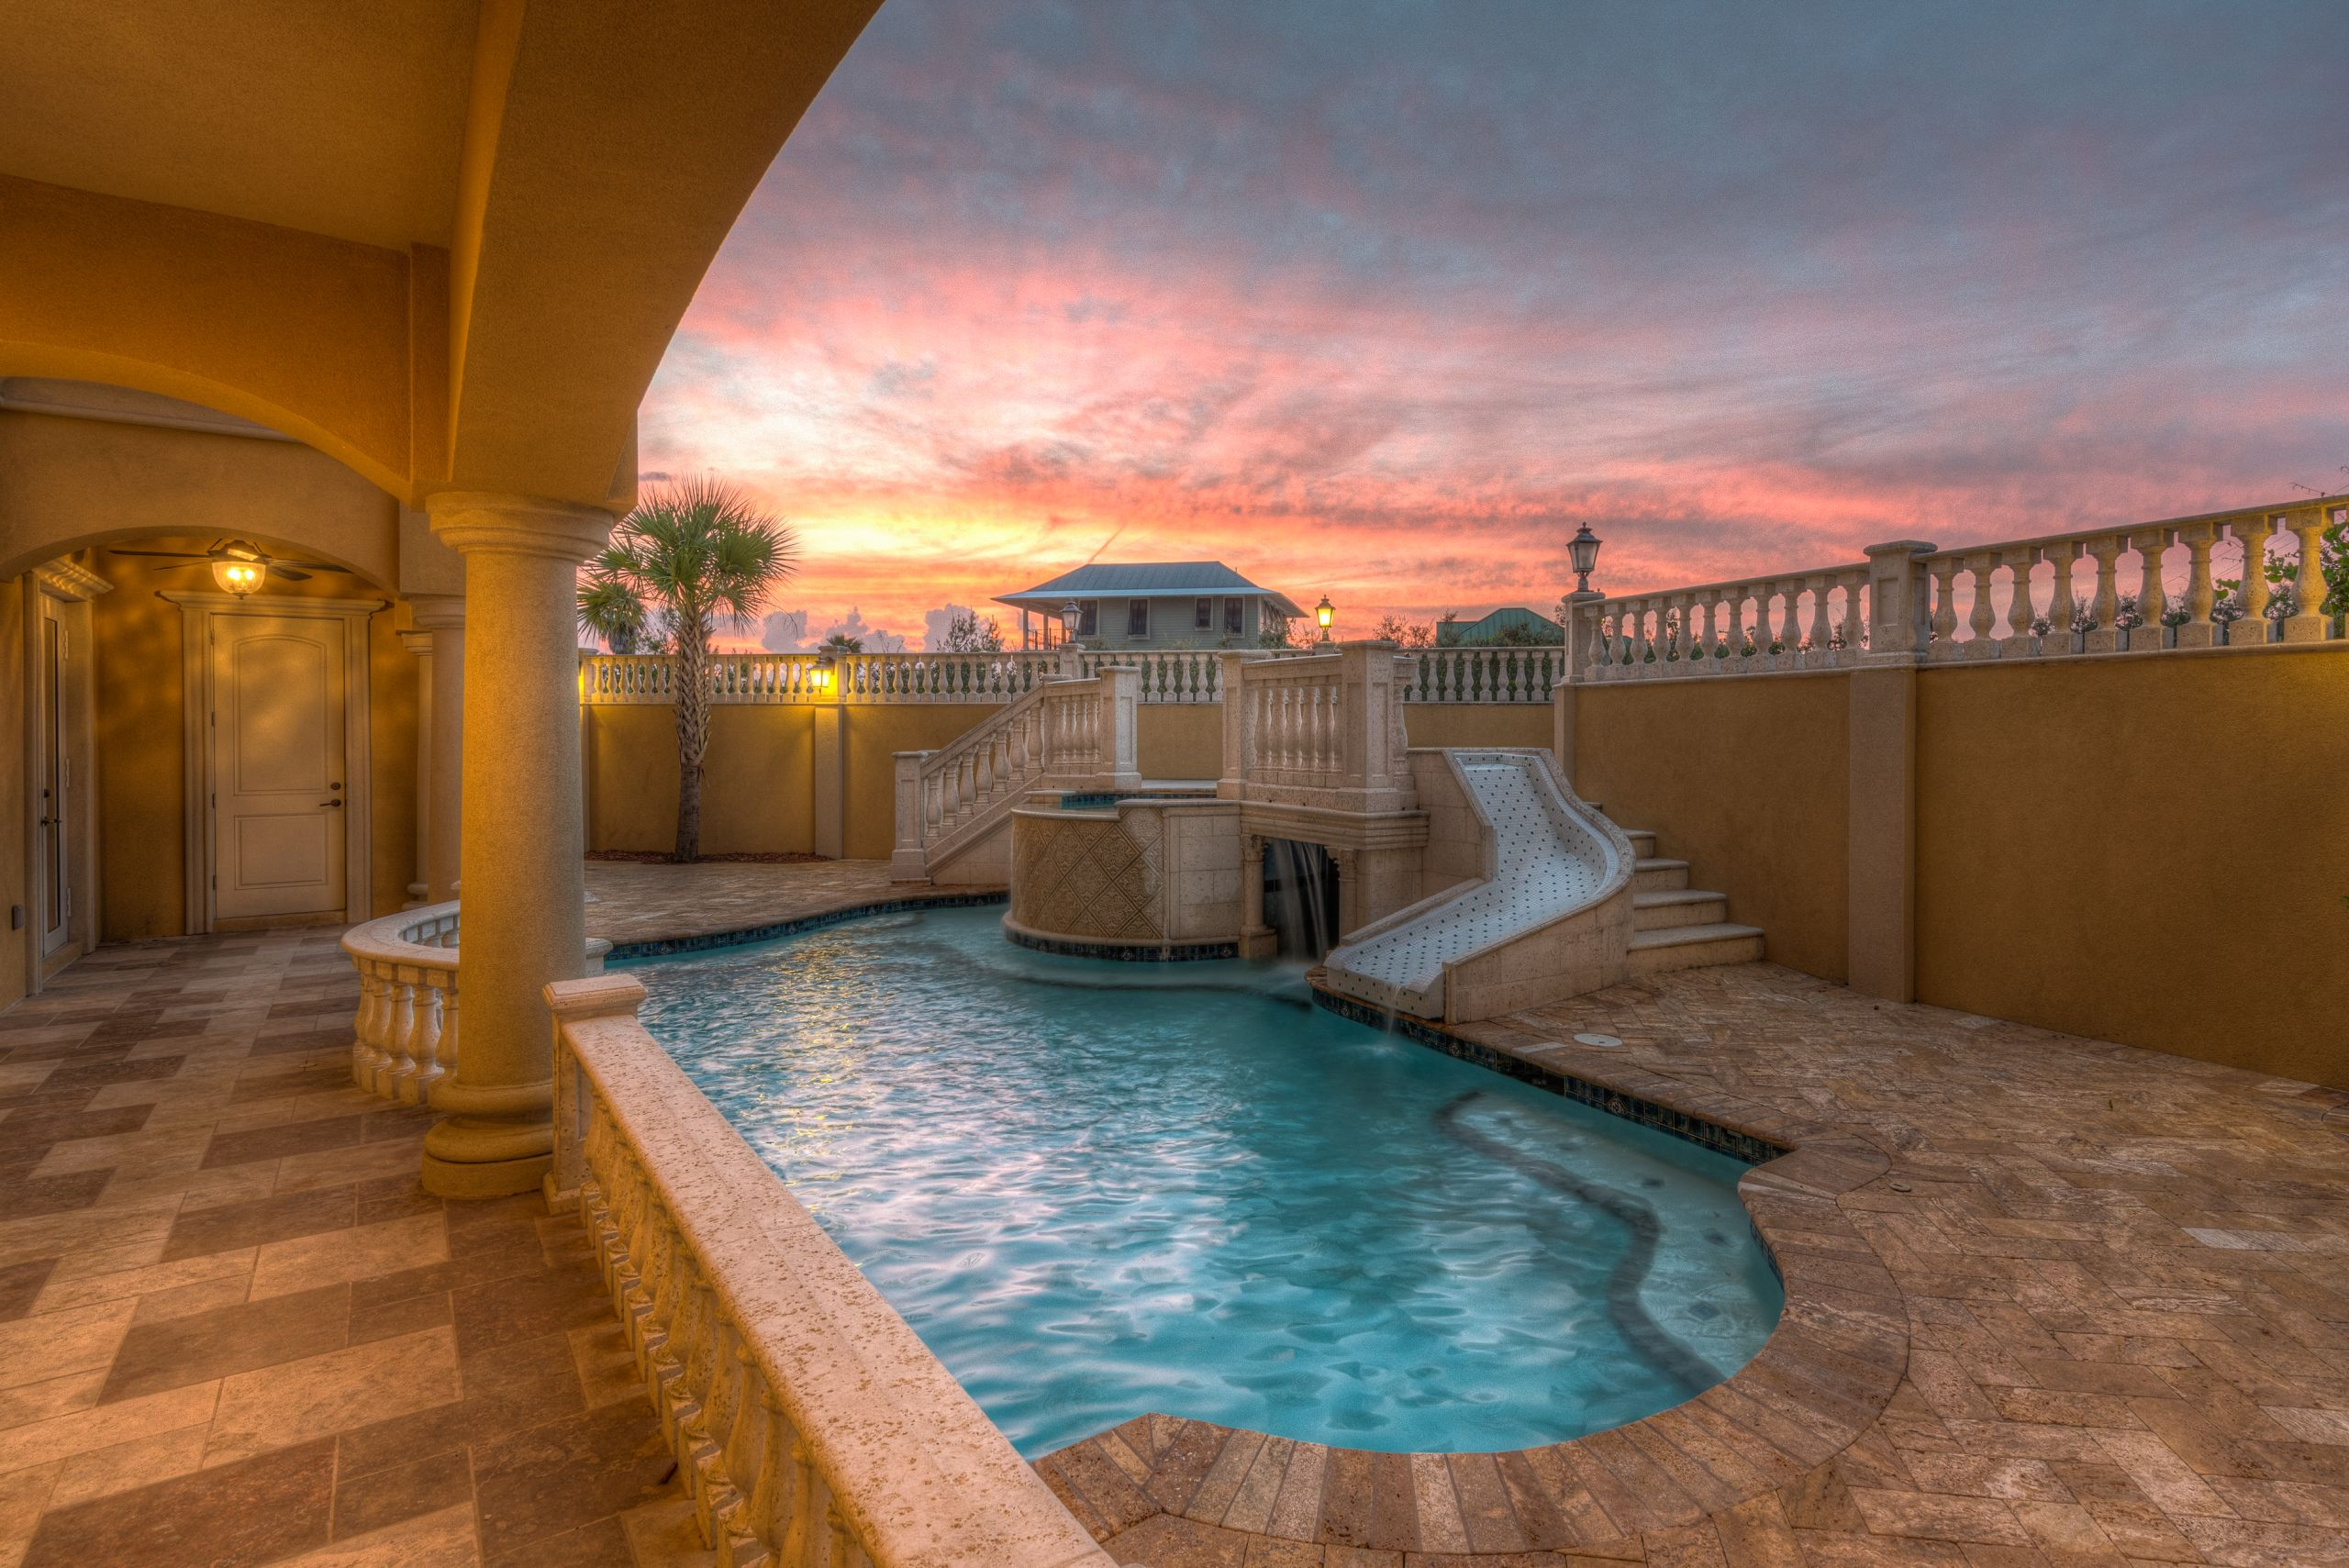 Approximately 300 Emerald Coast Agents to Help You Find Your Dream Home